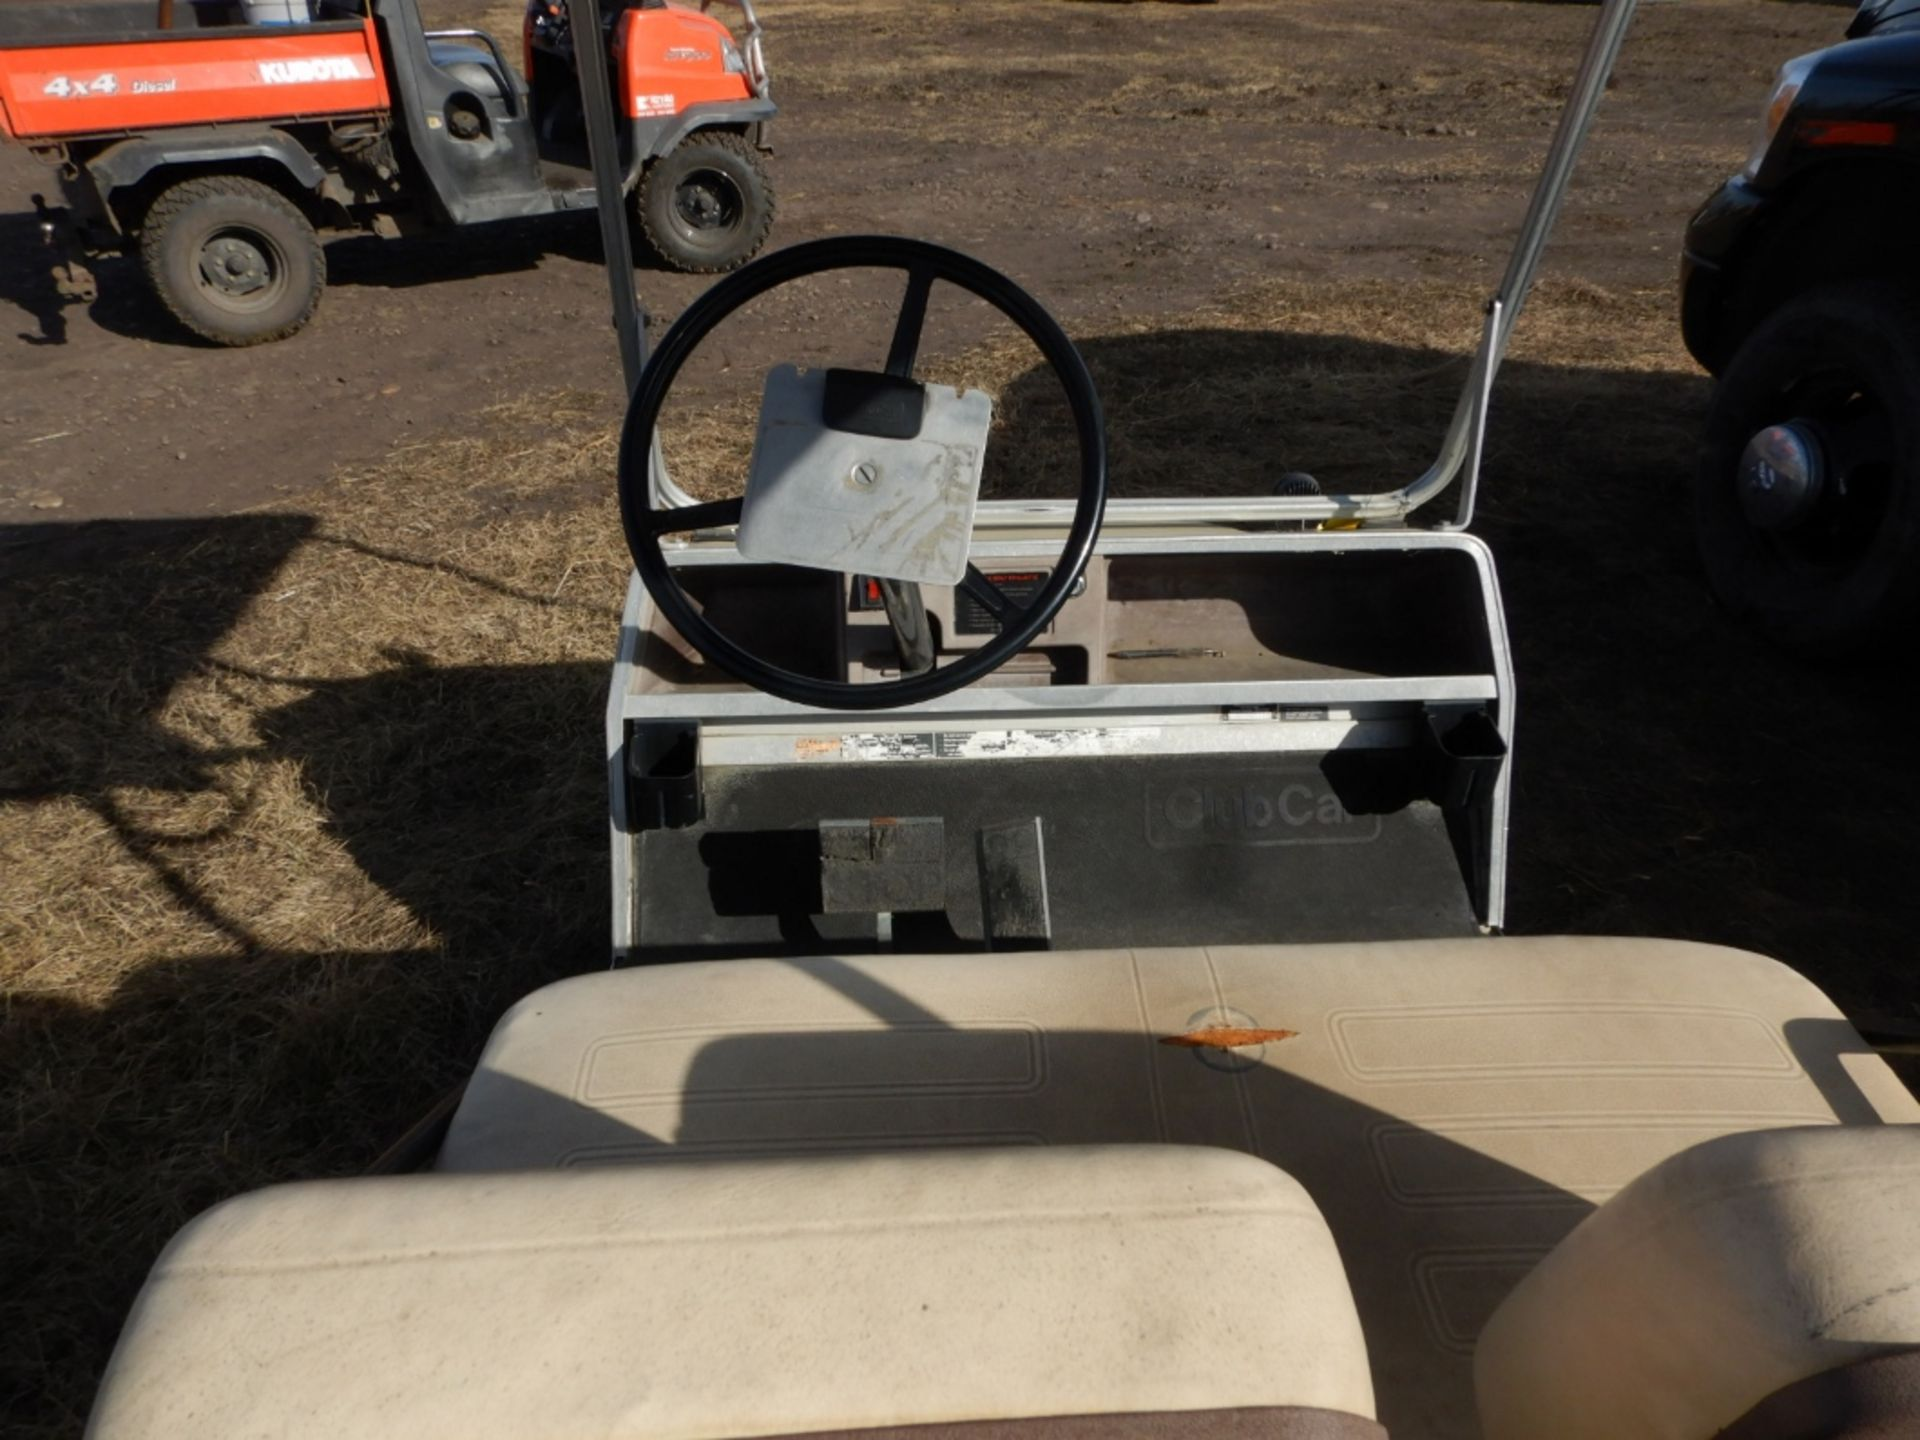 CLUB CAR GAS POWERED GOLF CART S/N AG9132254635 W/NEW BRAKES, BATTERY, REAR SEAT - Image 4 of 6